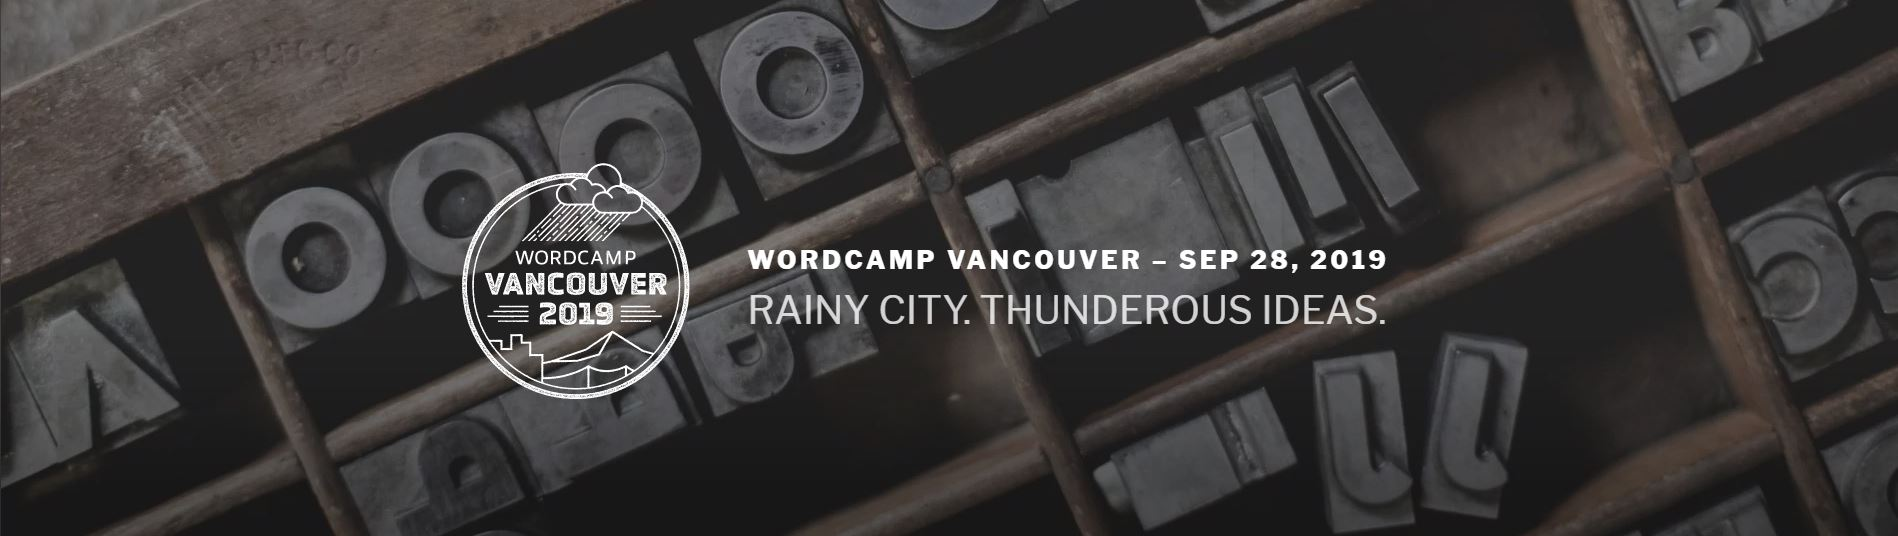 https://2019.vancouver.wordcamp.org/